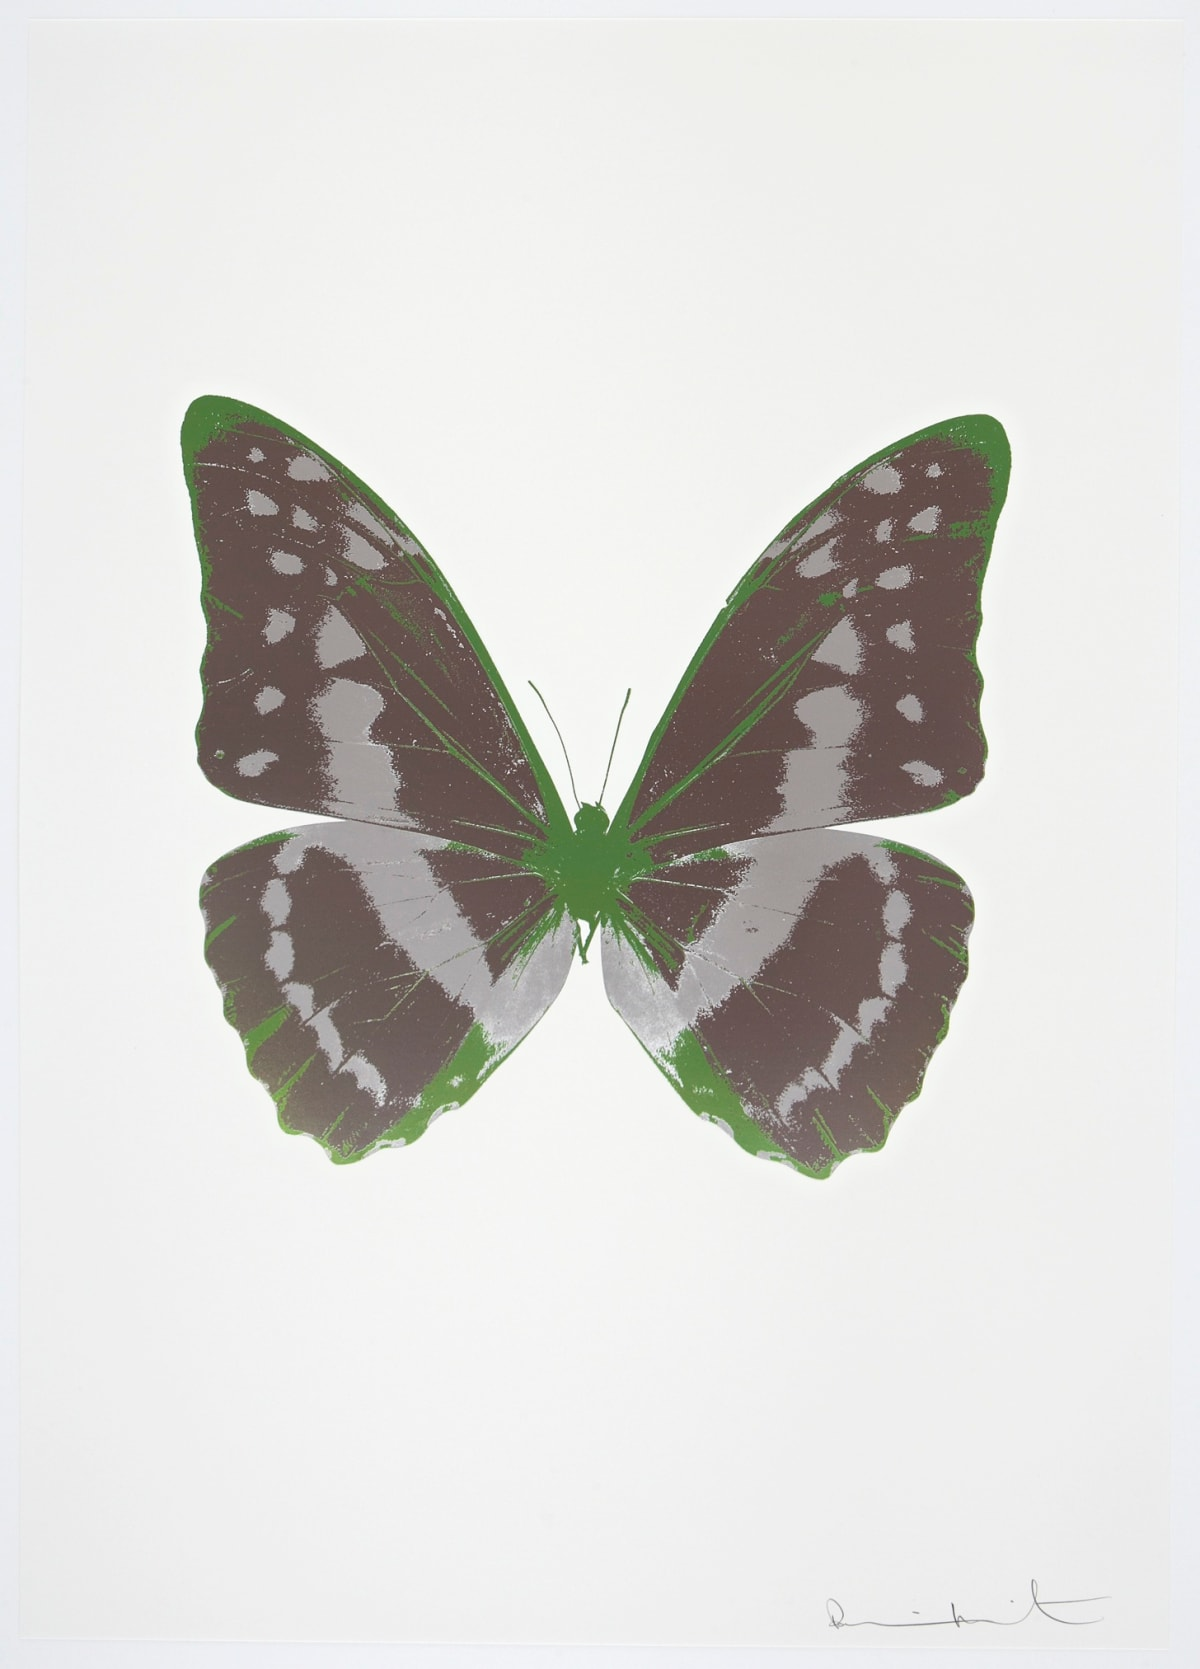 Damien Hirst The Souls III - Gunmetal/Silver Gloss/Leaf Green, 2010 3 colour foil block on 300gsm Arches 88 archival paper. Signed and numbered. Published by Paul Stolper and Other Criteria 72 x 51cm OC7963 / 660-66 Edition of 15